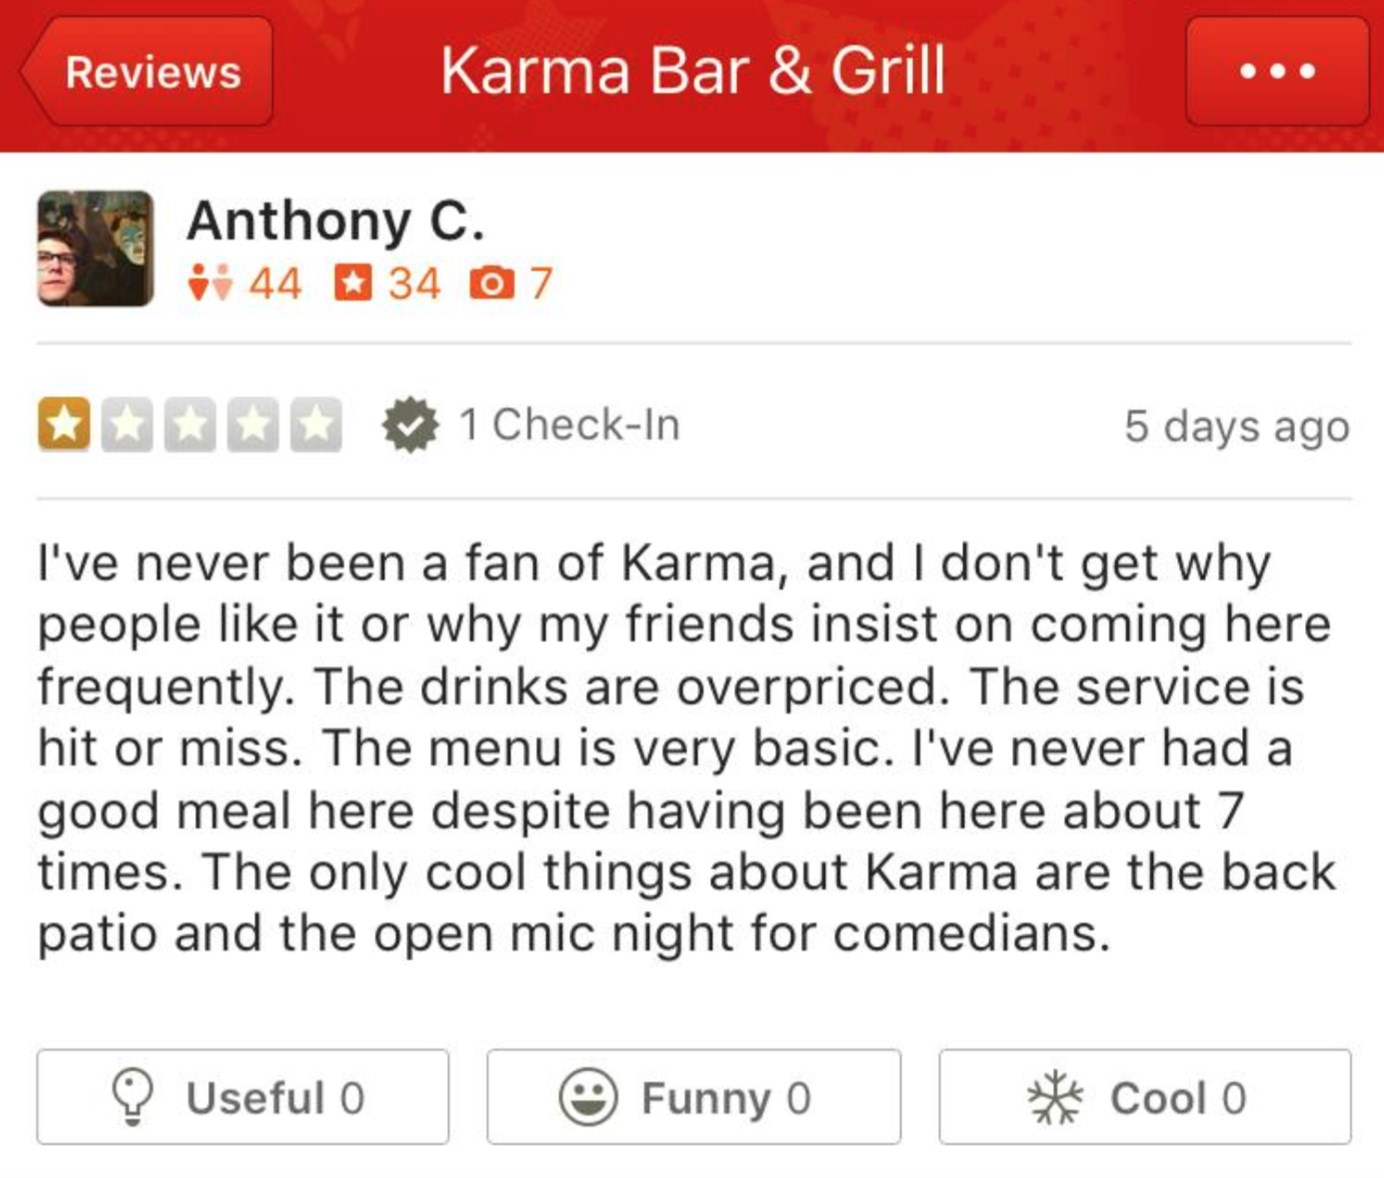 Negative review of Karma Bar and Grill